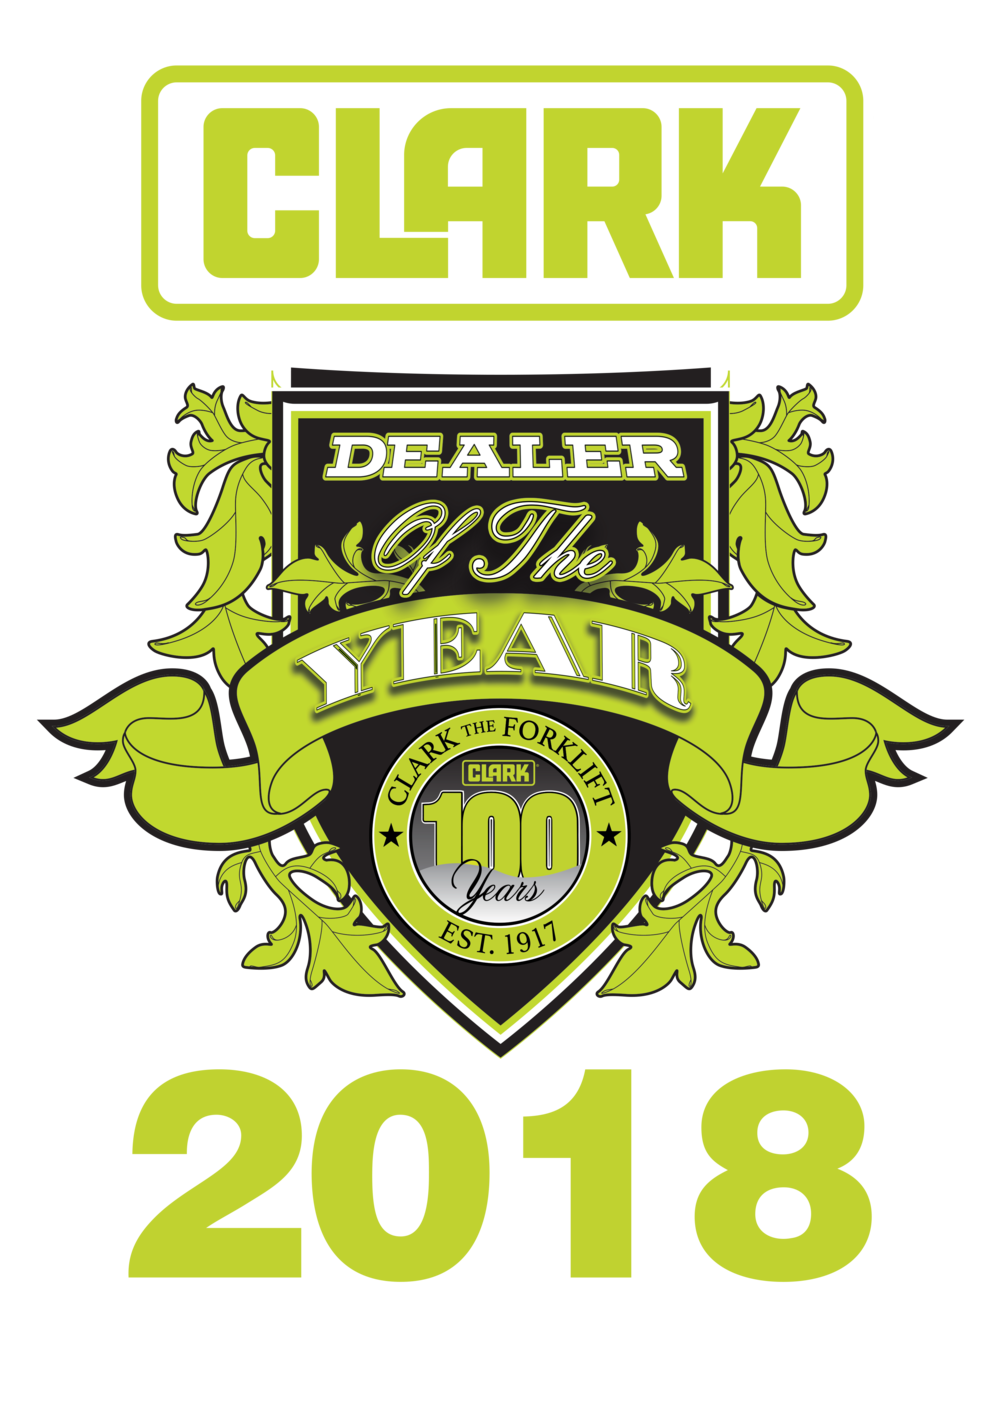 2018 Clark Dealer of the Year